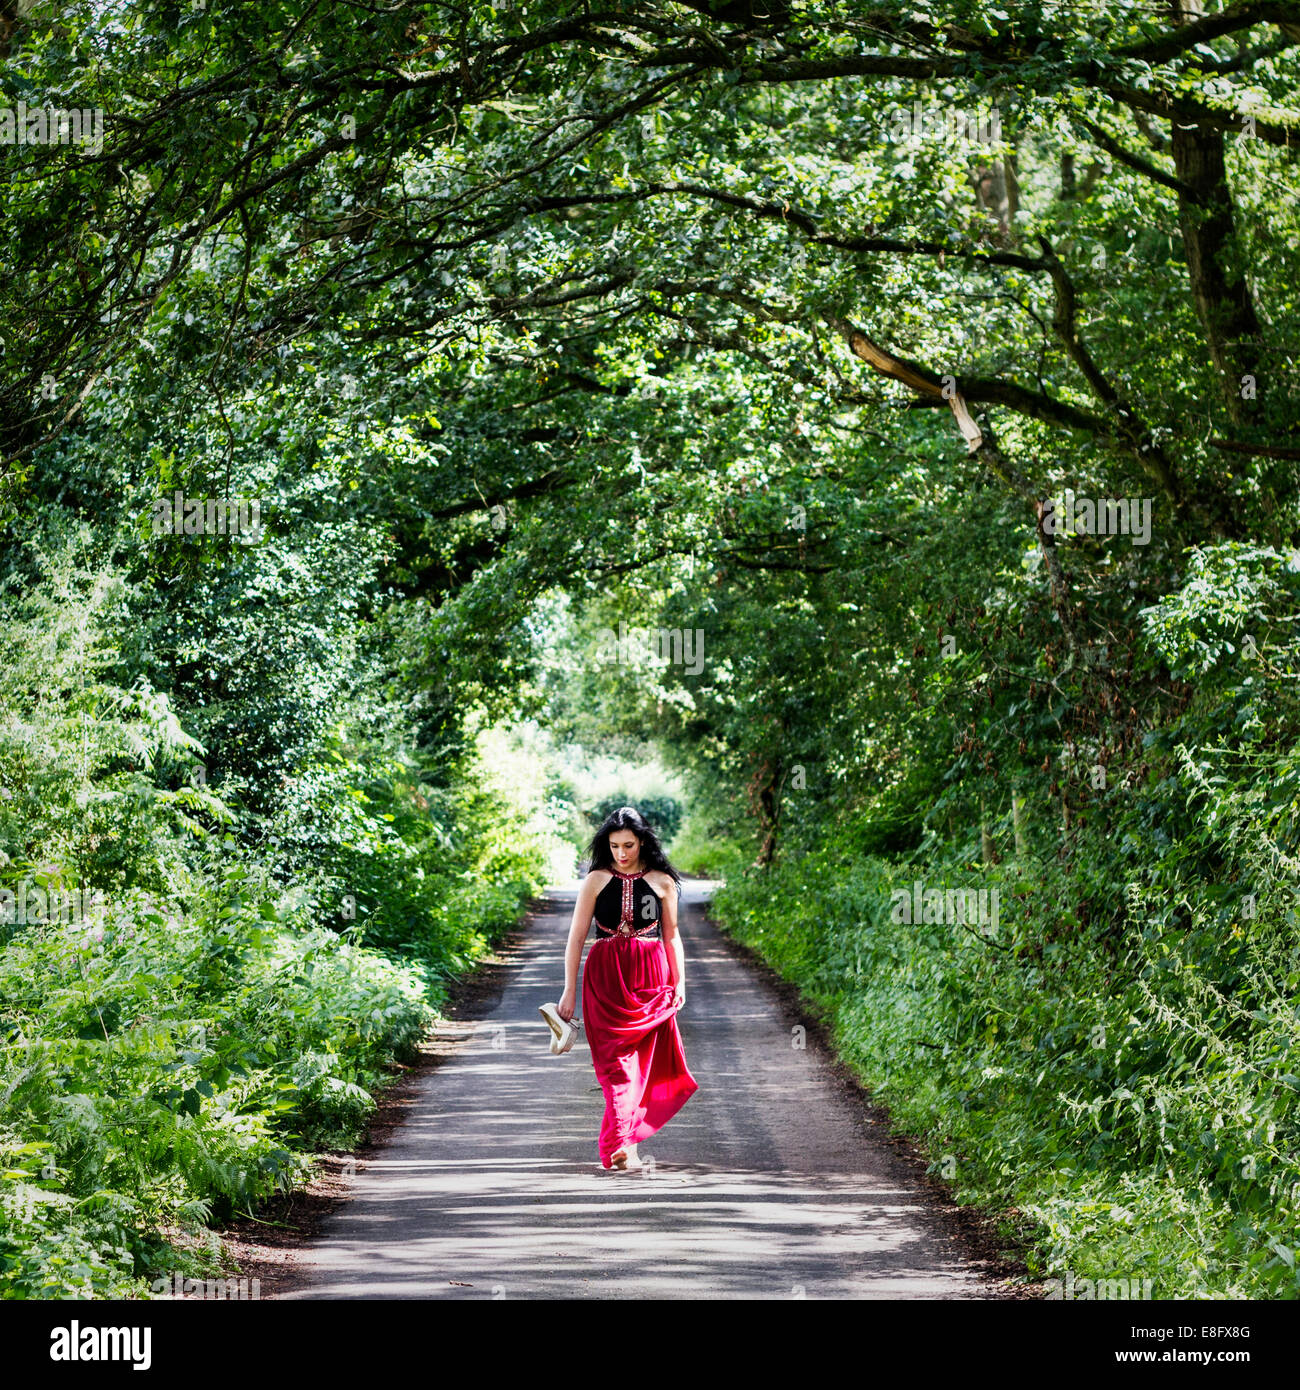 UK, England, Berkshire, Women in dress walking down country lane - Stock Image